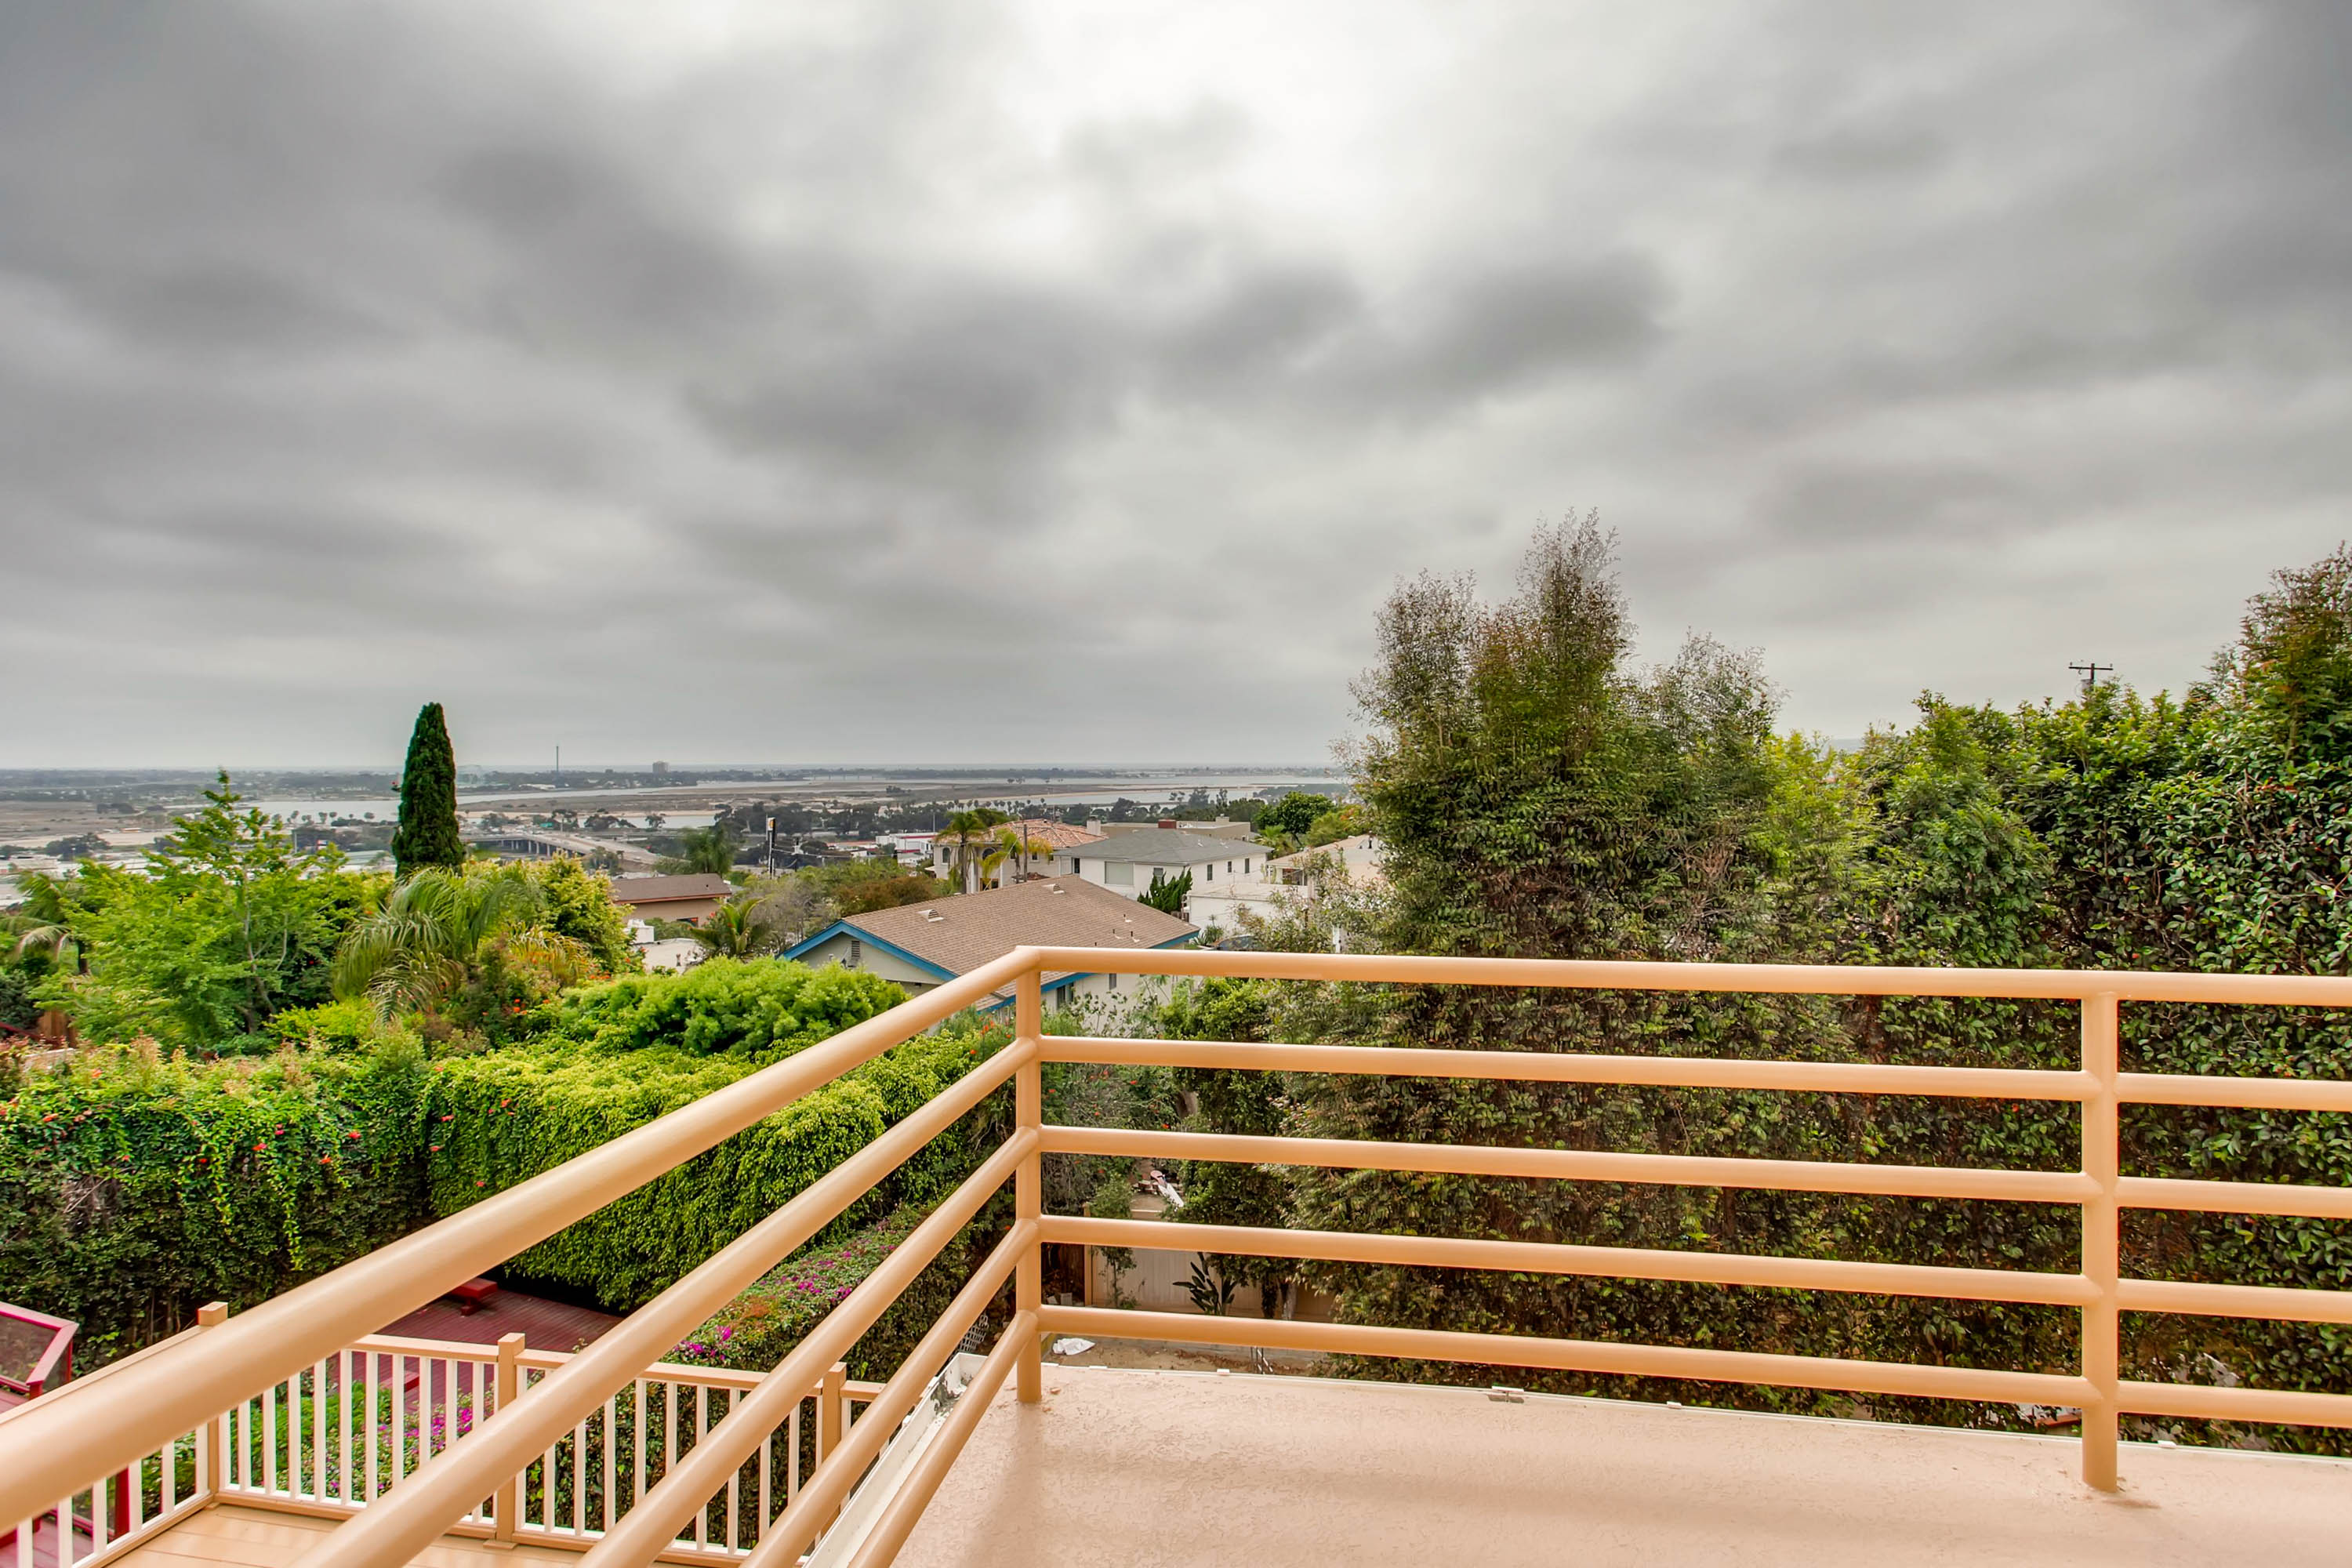 1430 Monitor Road, San Diego, CA 92110 Image #26